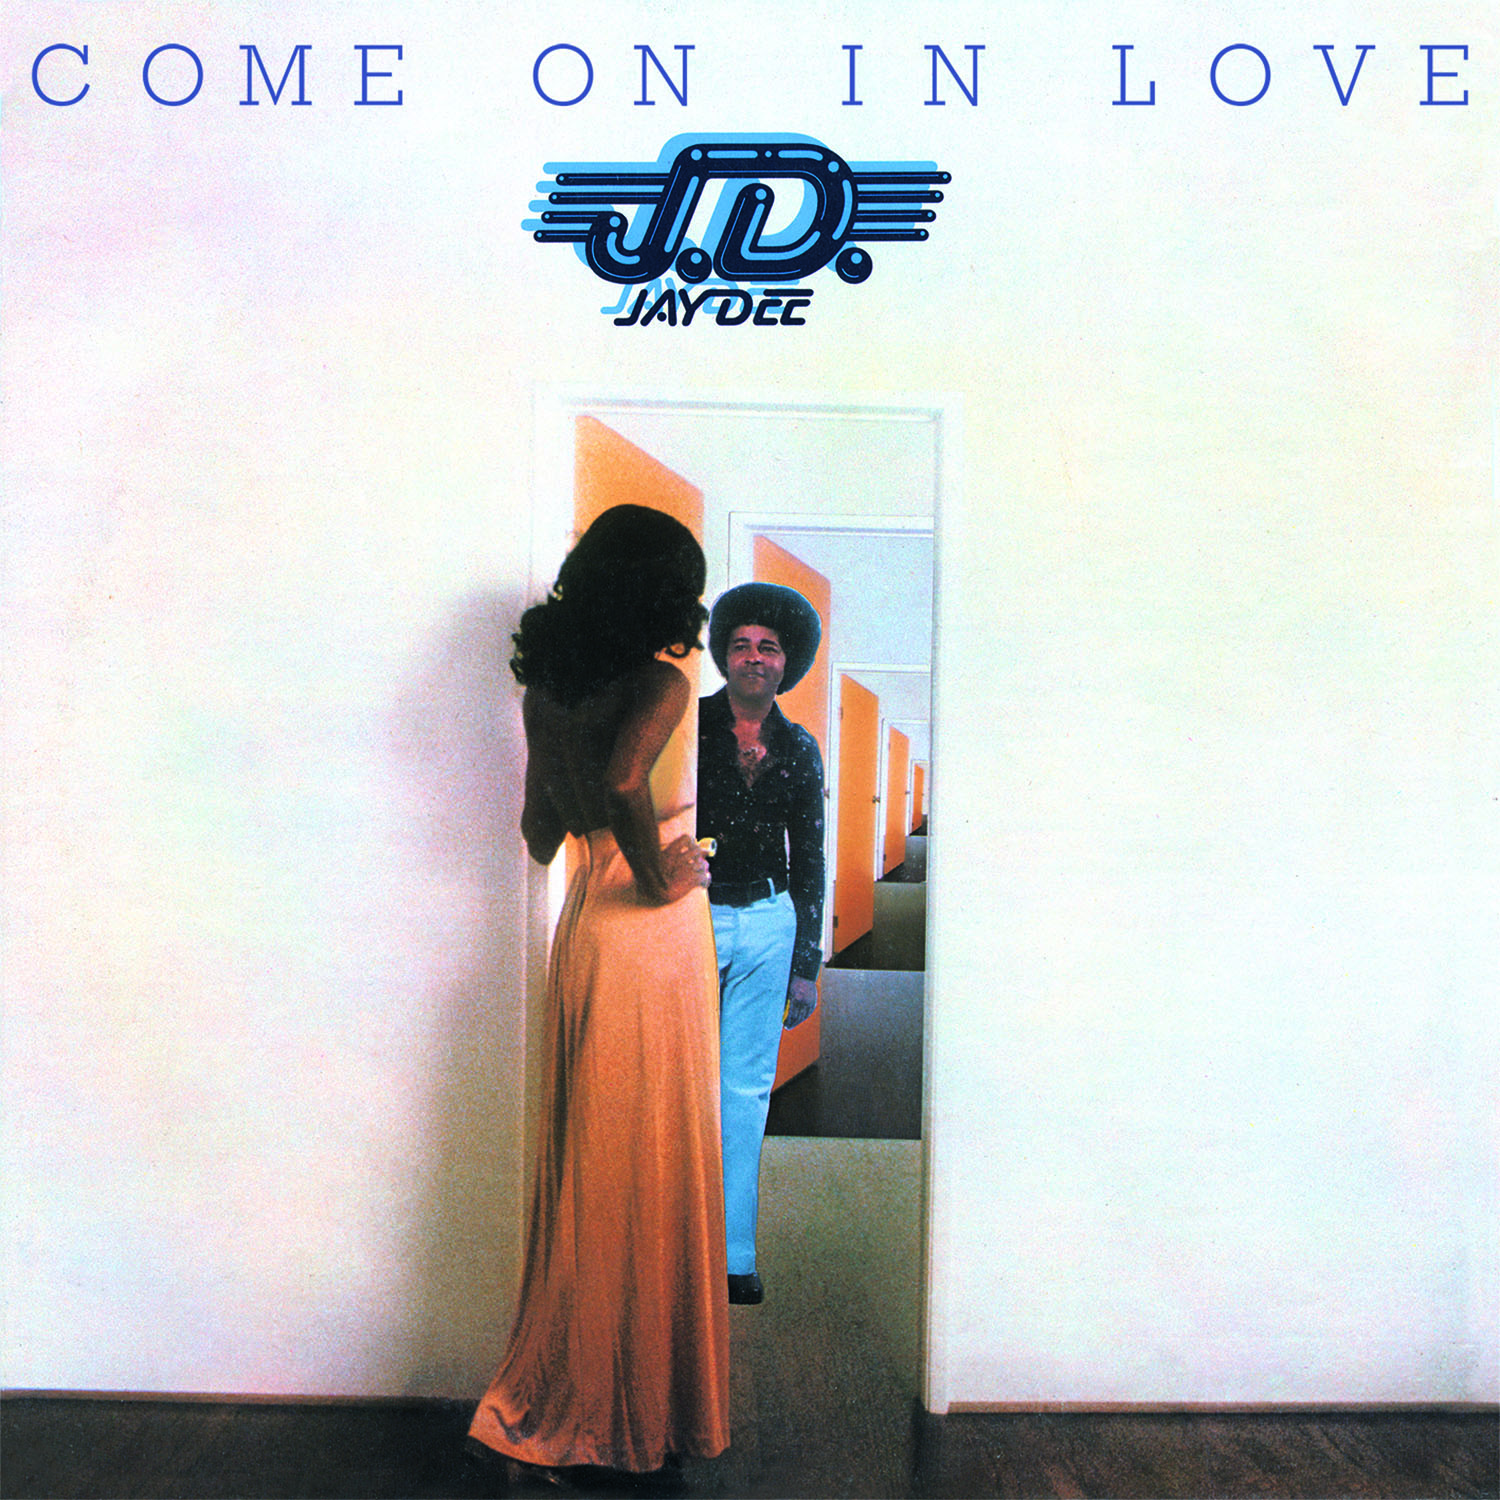 Jay Dee/COME ON IN LOVE (EXPANDED) CD